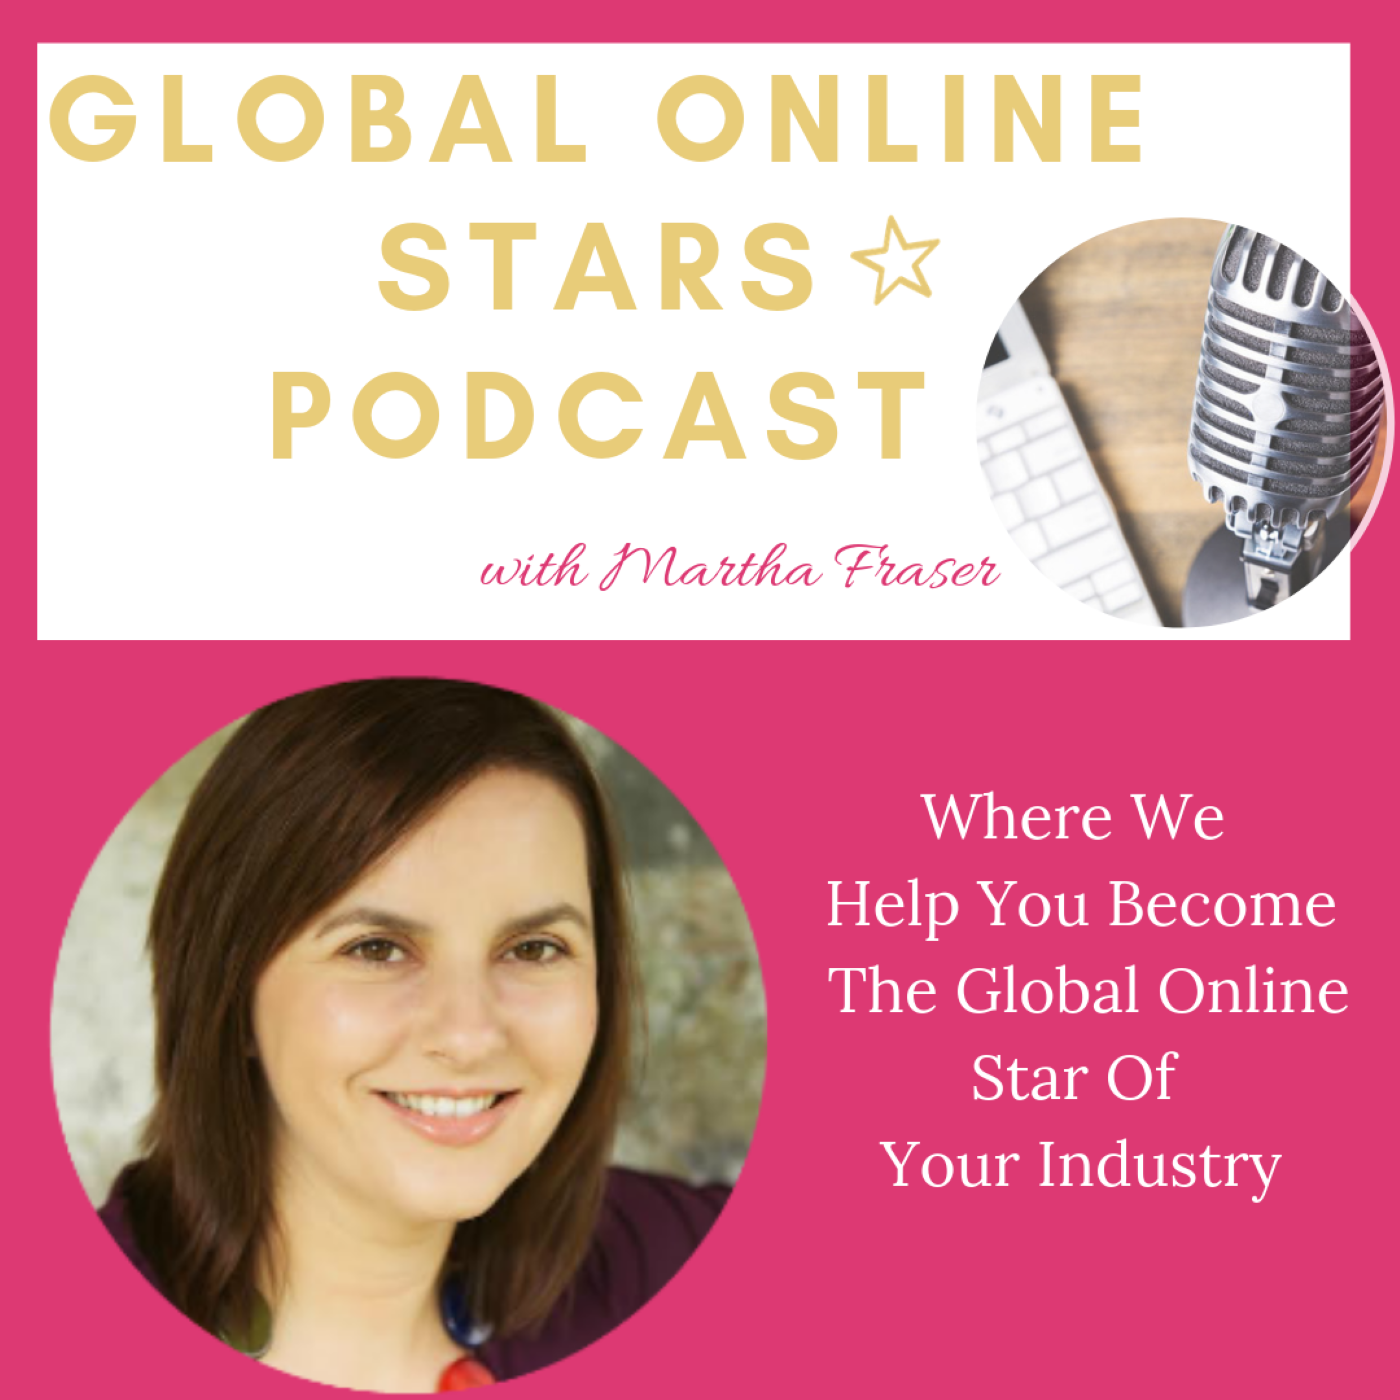 Global Online Stars: Where We Help You Become The Global Online Star Of Your Industry show art